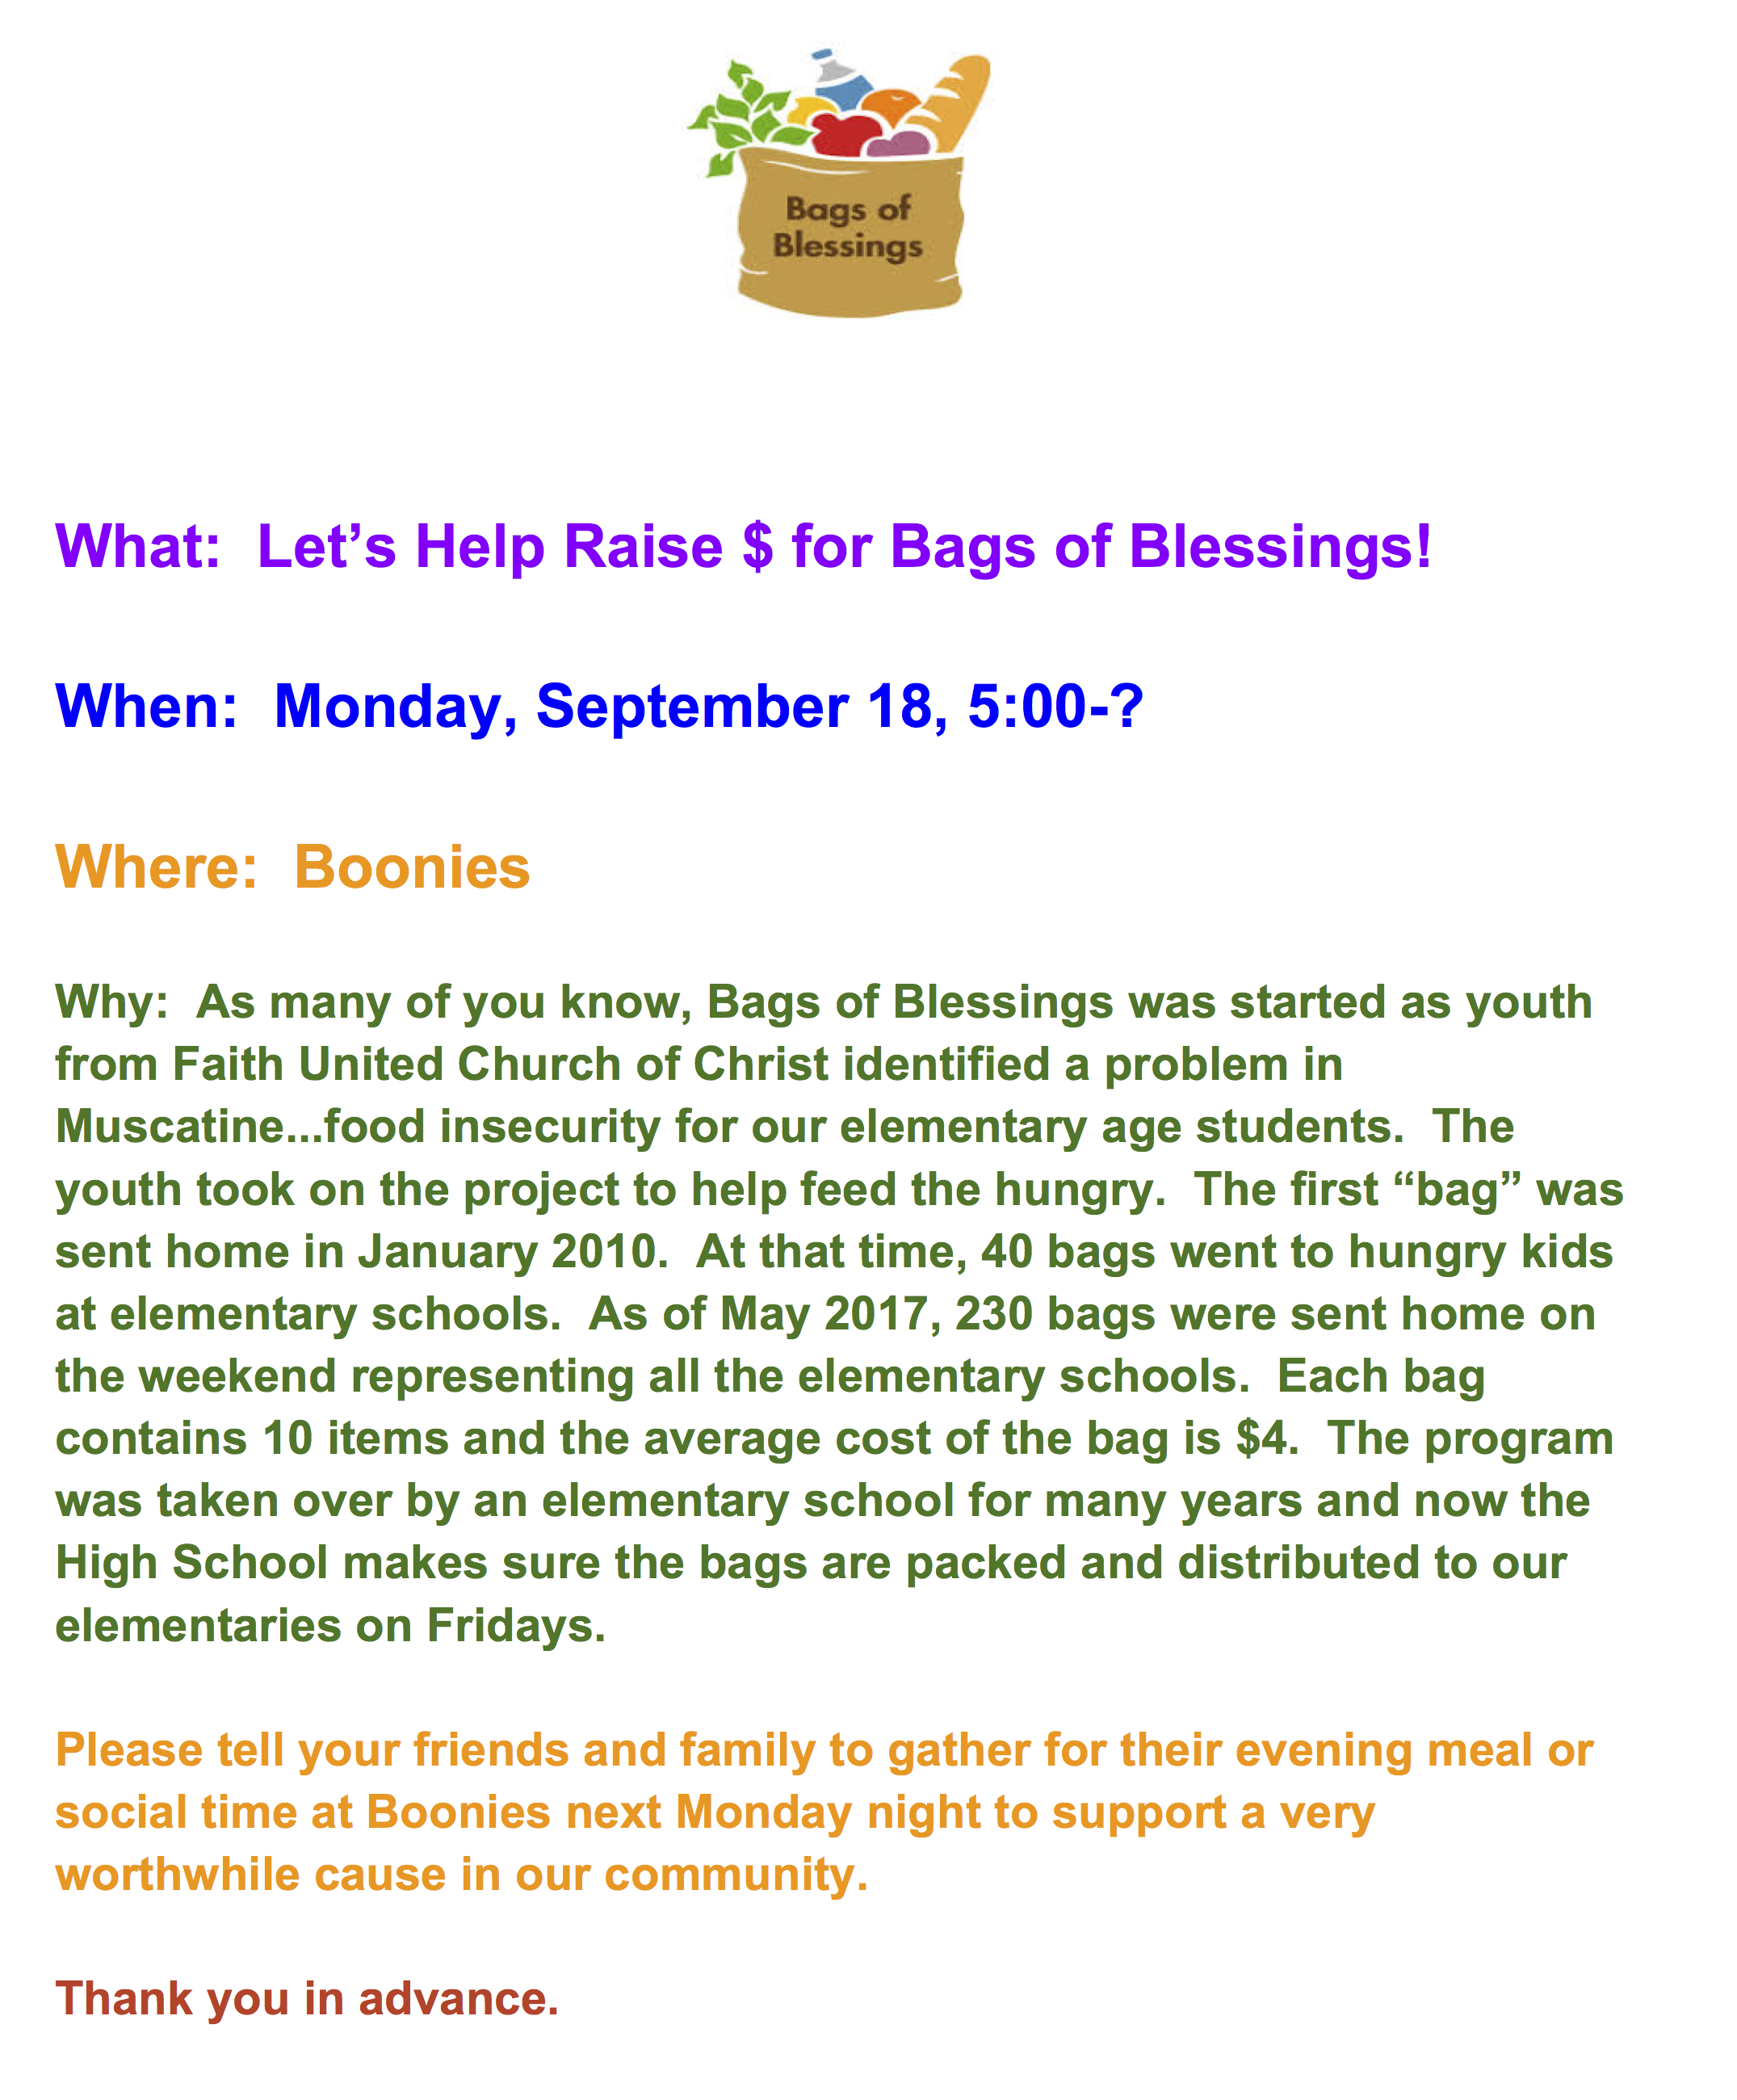 Boonies Bags Of Blessings Fundraiser 918 Muscatine Community